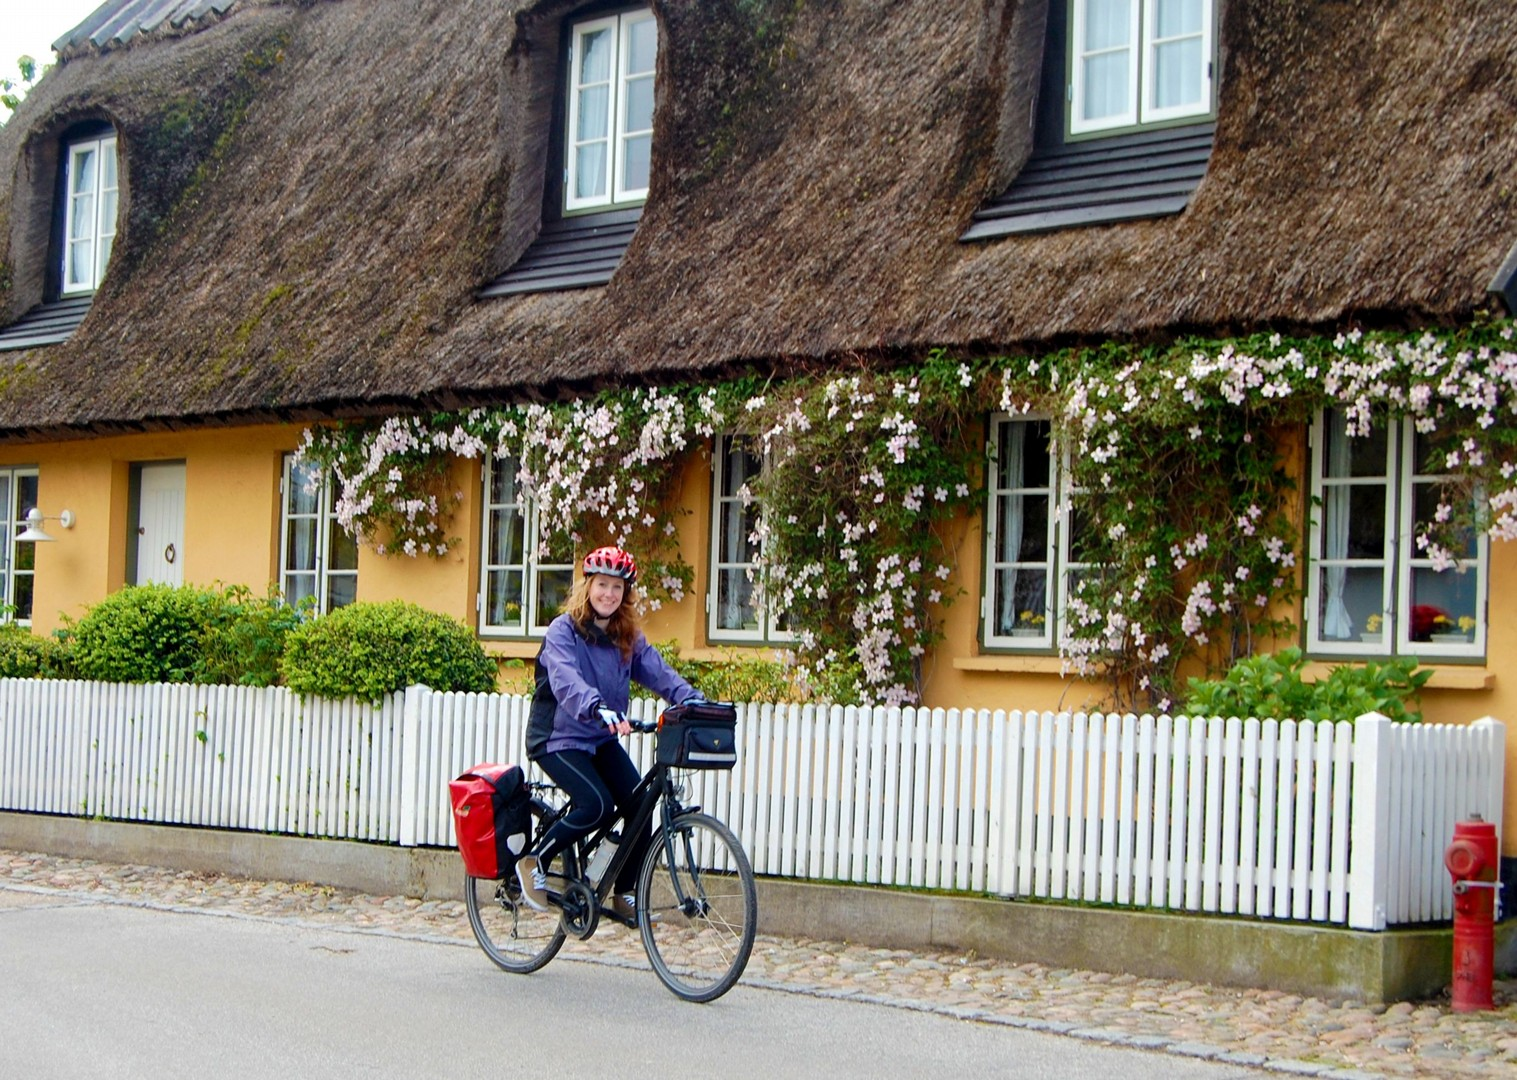 traditional-danish-houses-denmark-family-holiday.jpg - NEW! Denmark - Zooming Through Zealand - Family Cycling